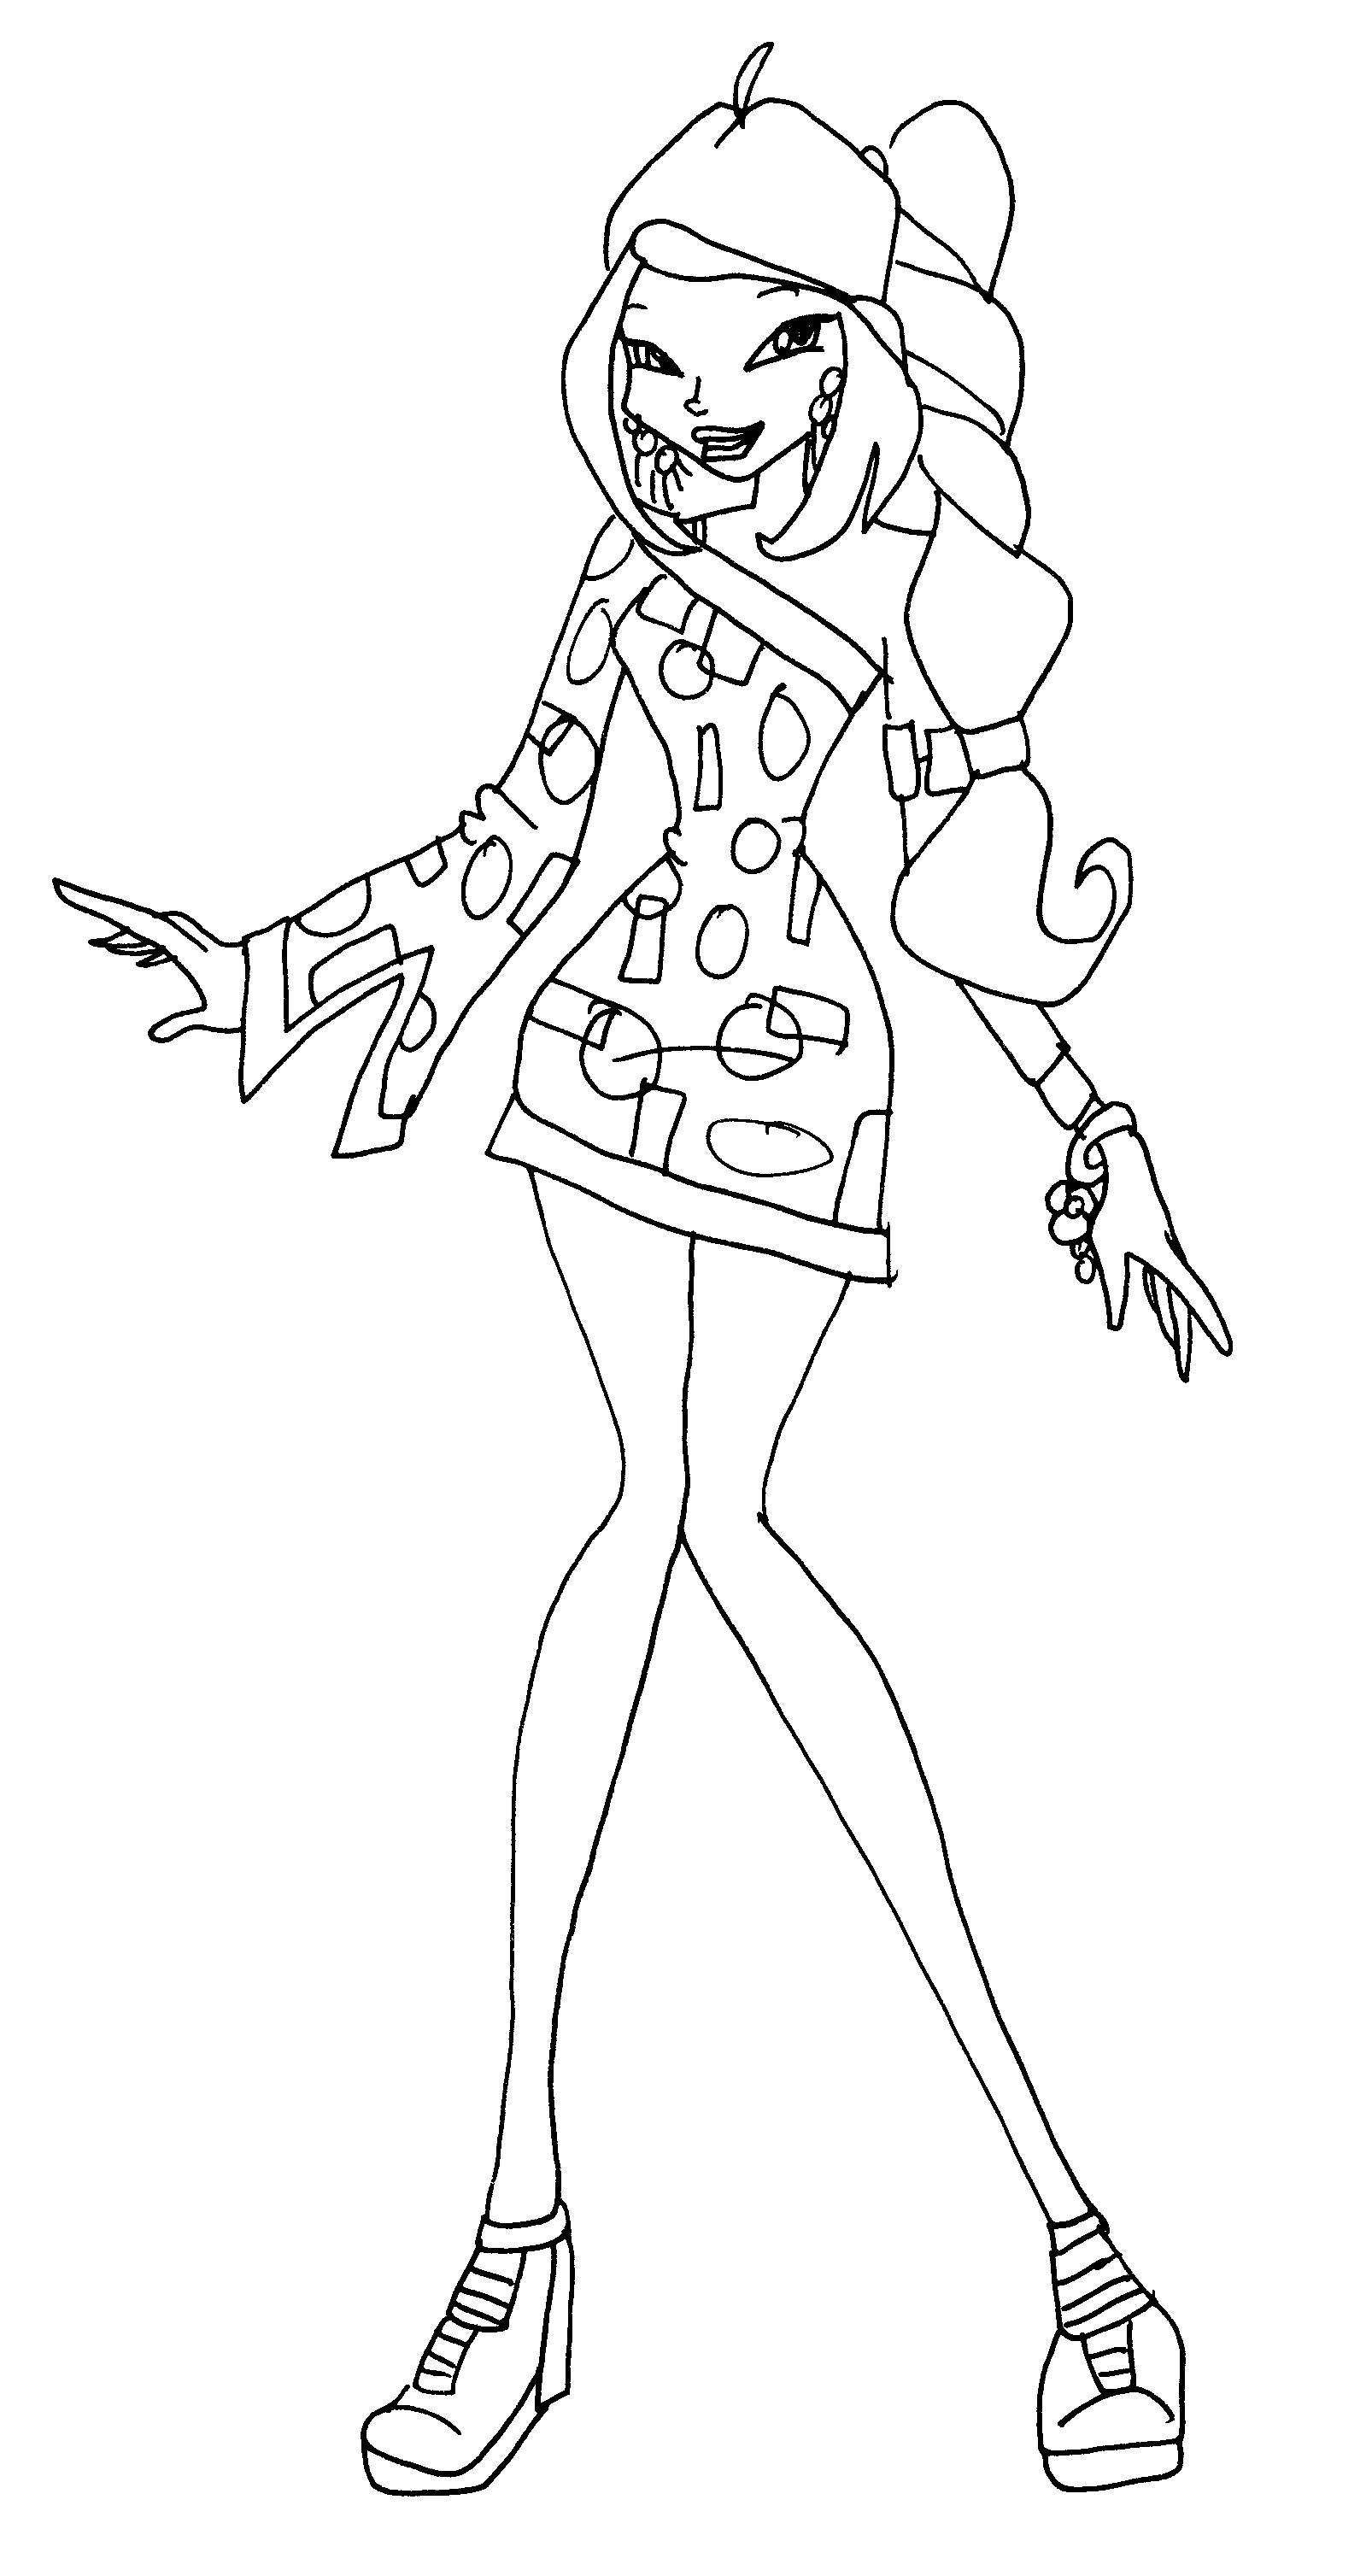 picture winx club learn how to draw roxy from winx club winx club step by picture winx club